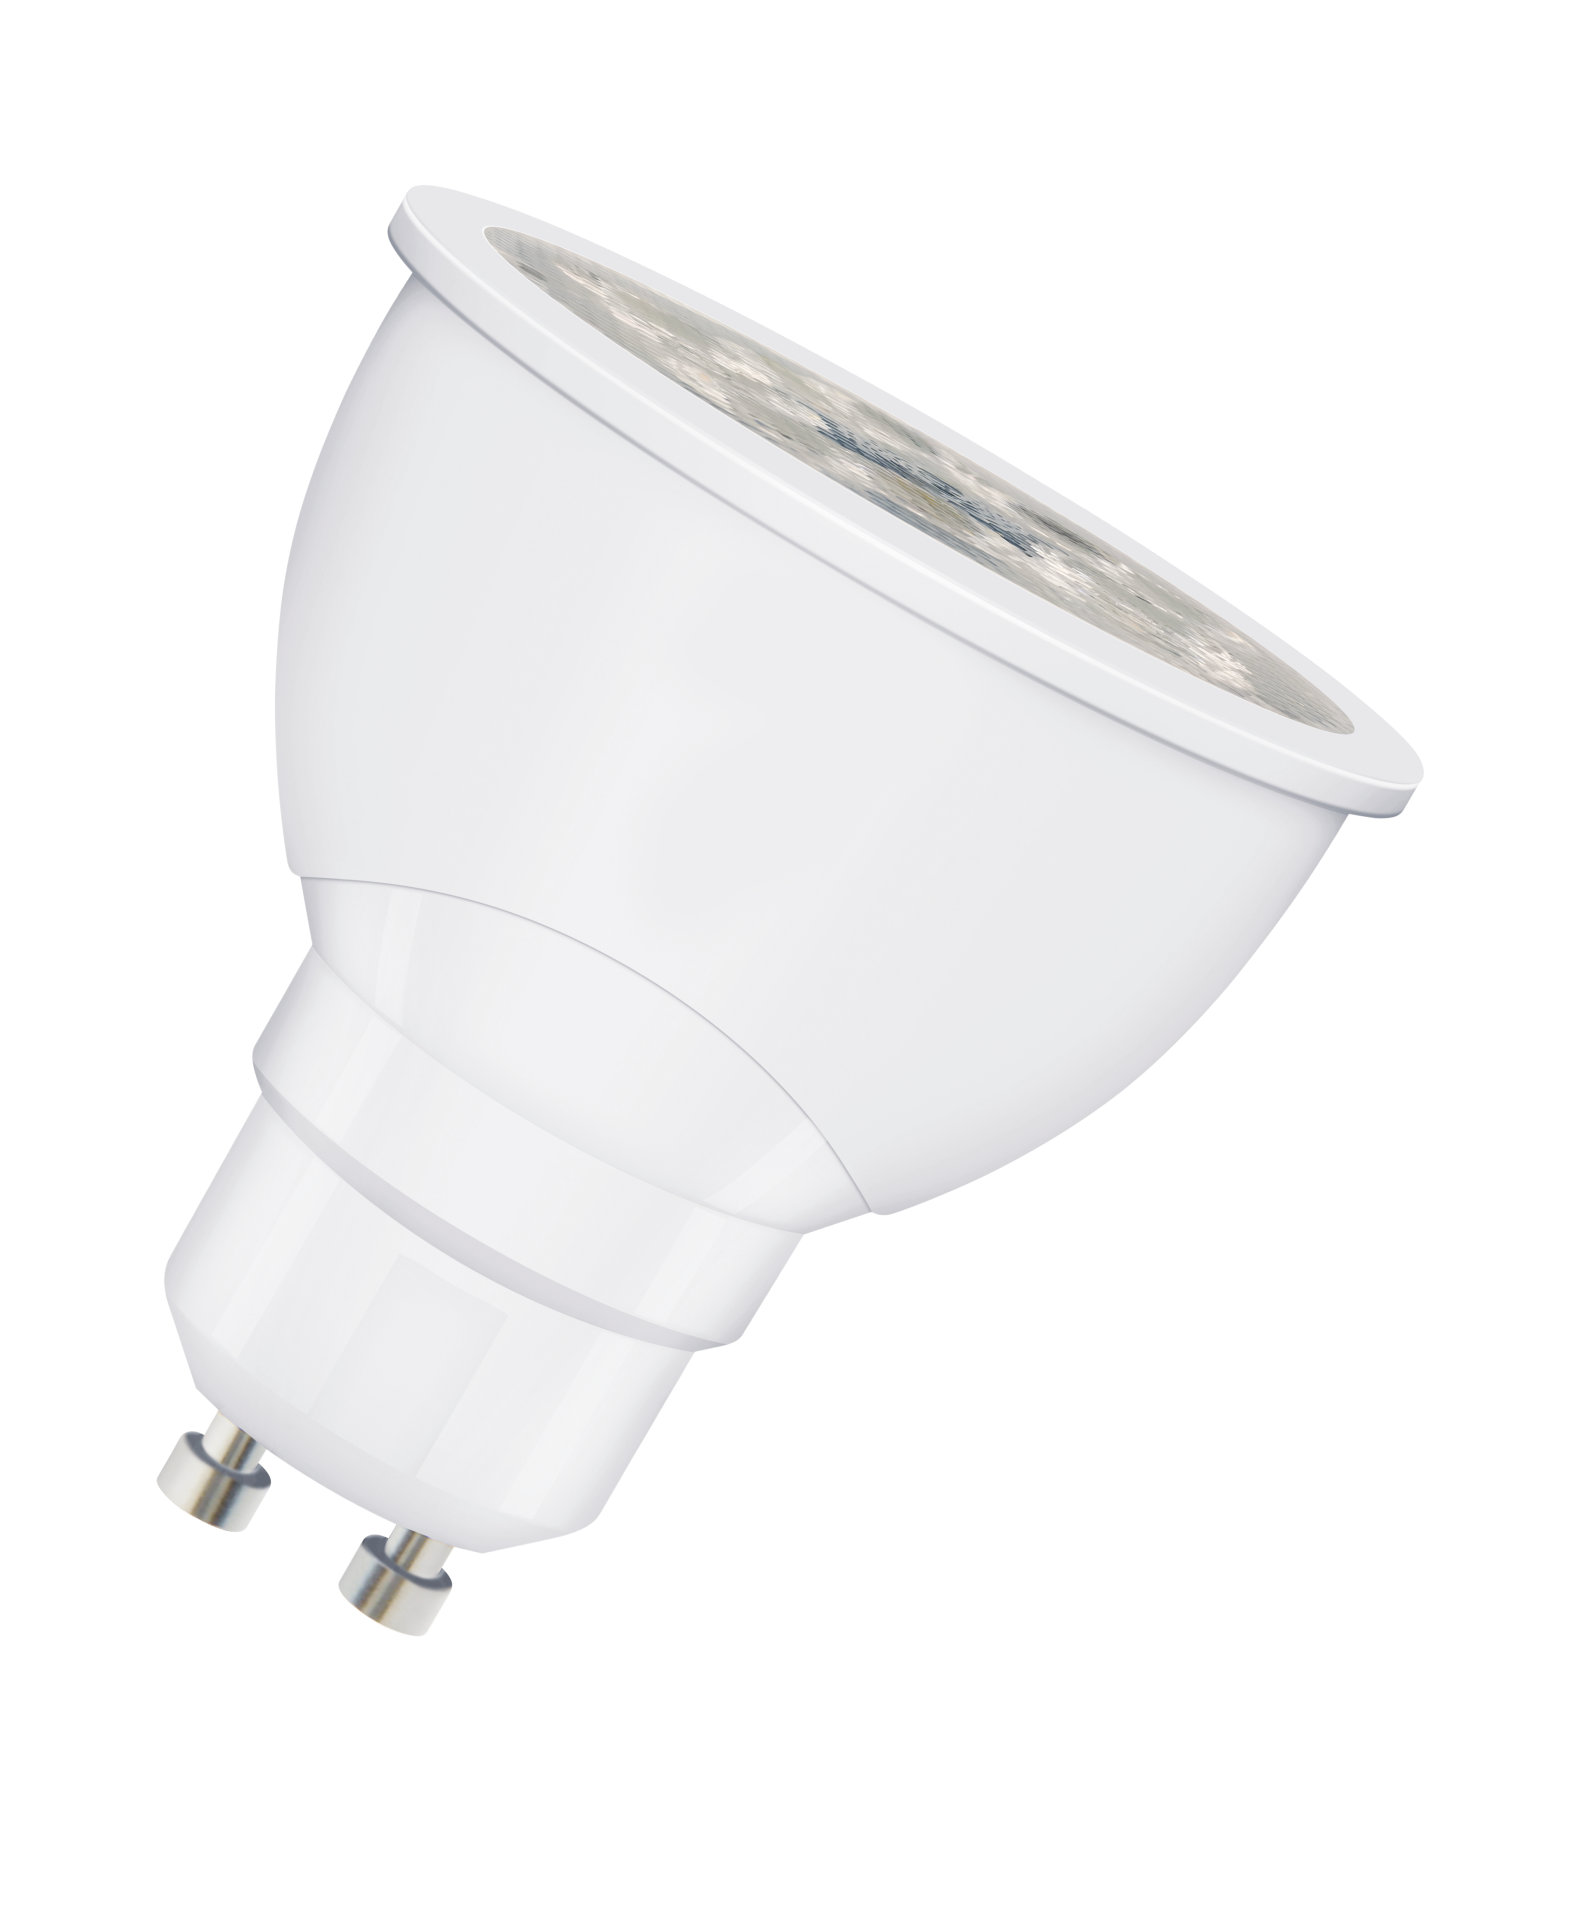 Reflector lamps with ZigBee technology